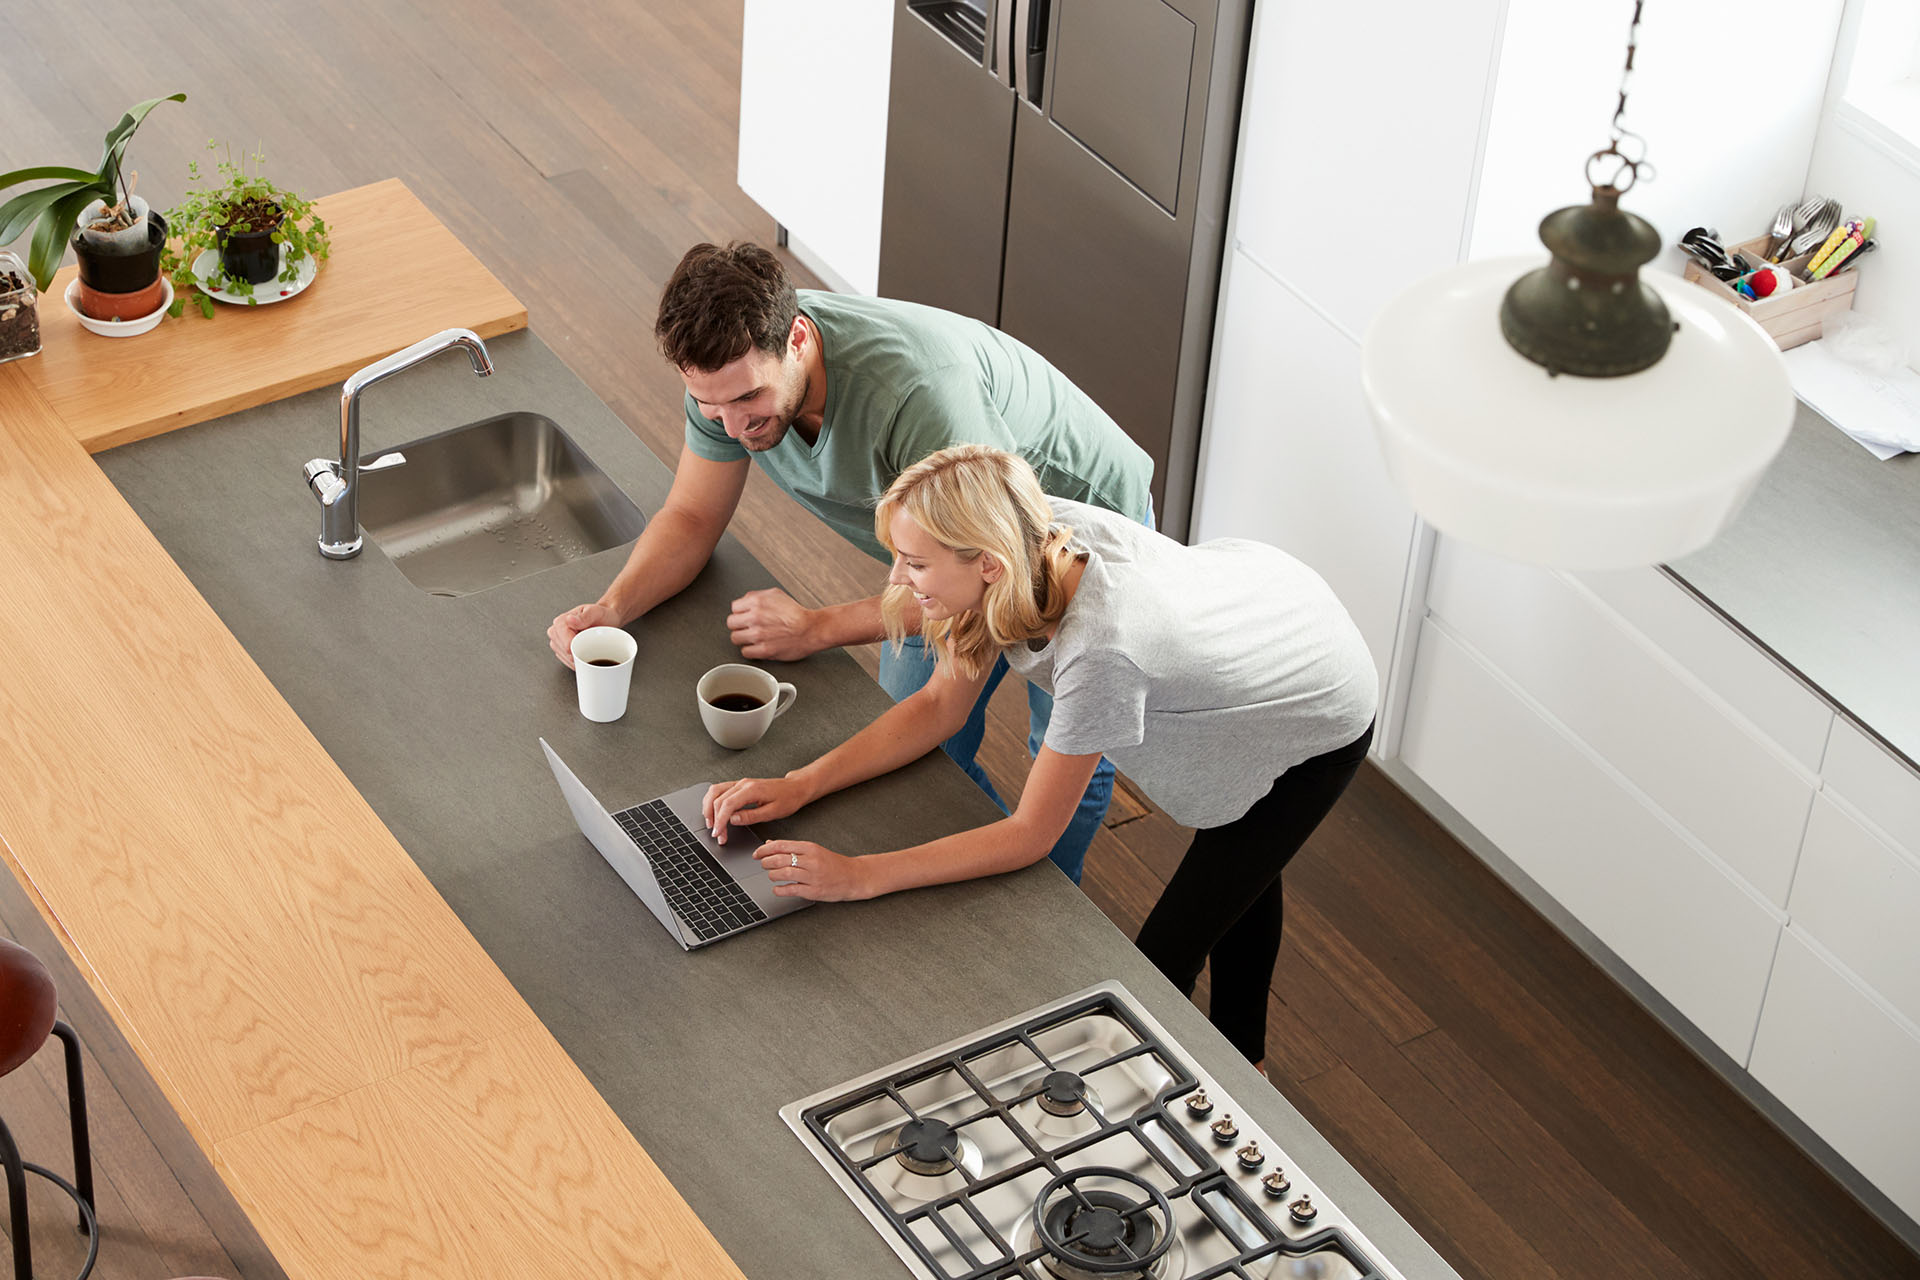 Man and woman looking at laptop in modern kitchen